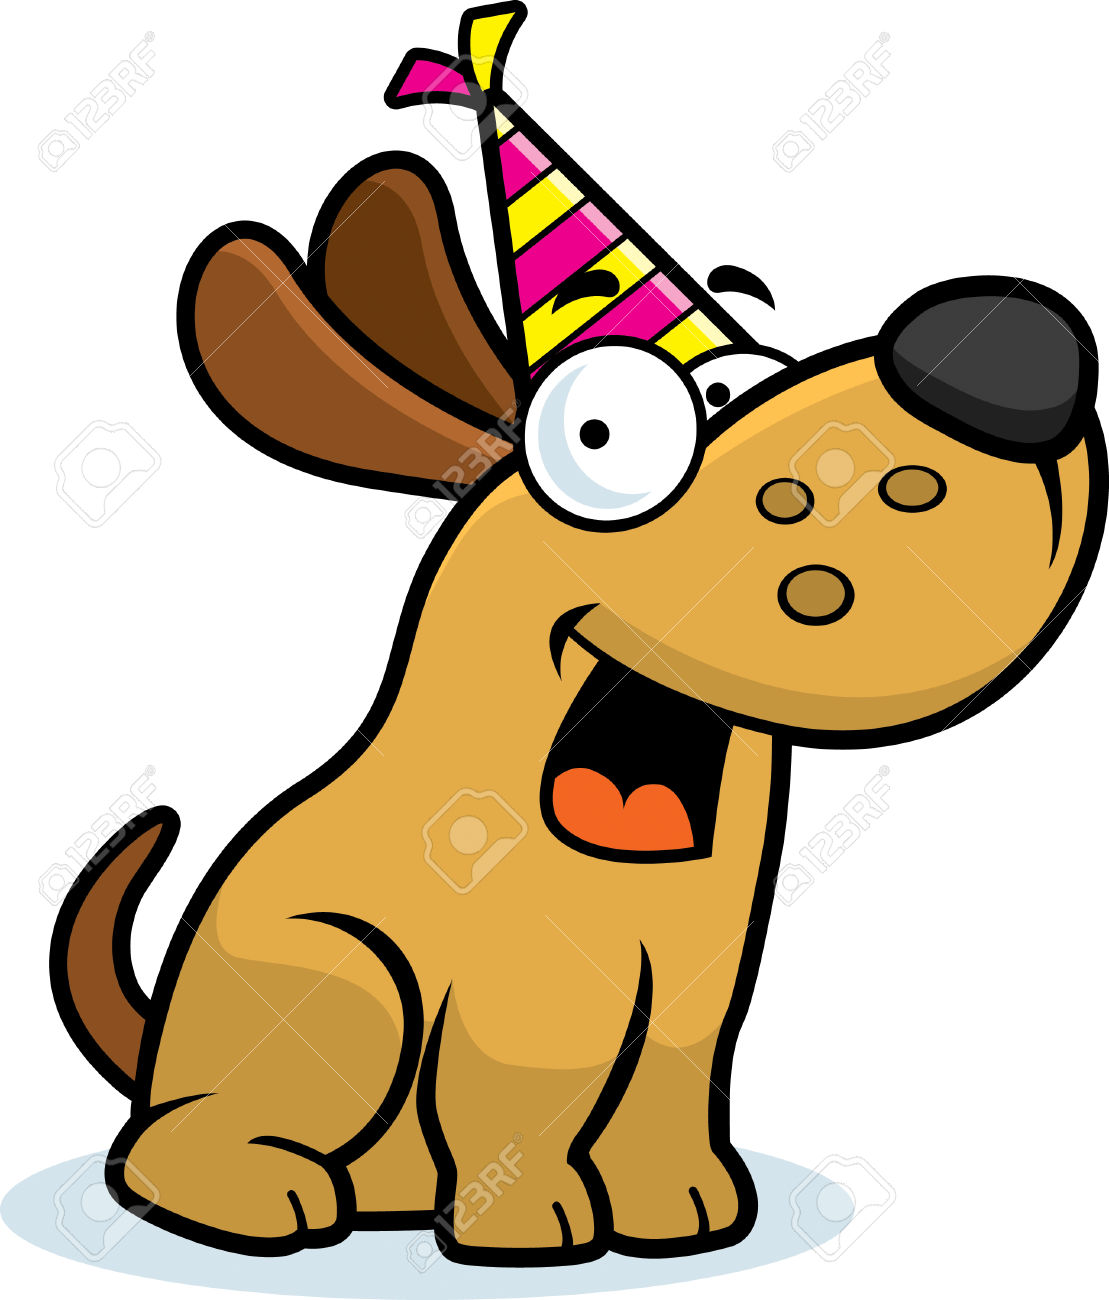 1109x1300 Collection Of Happy Birthday Dog Clipart High Quality, Free